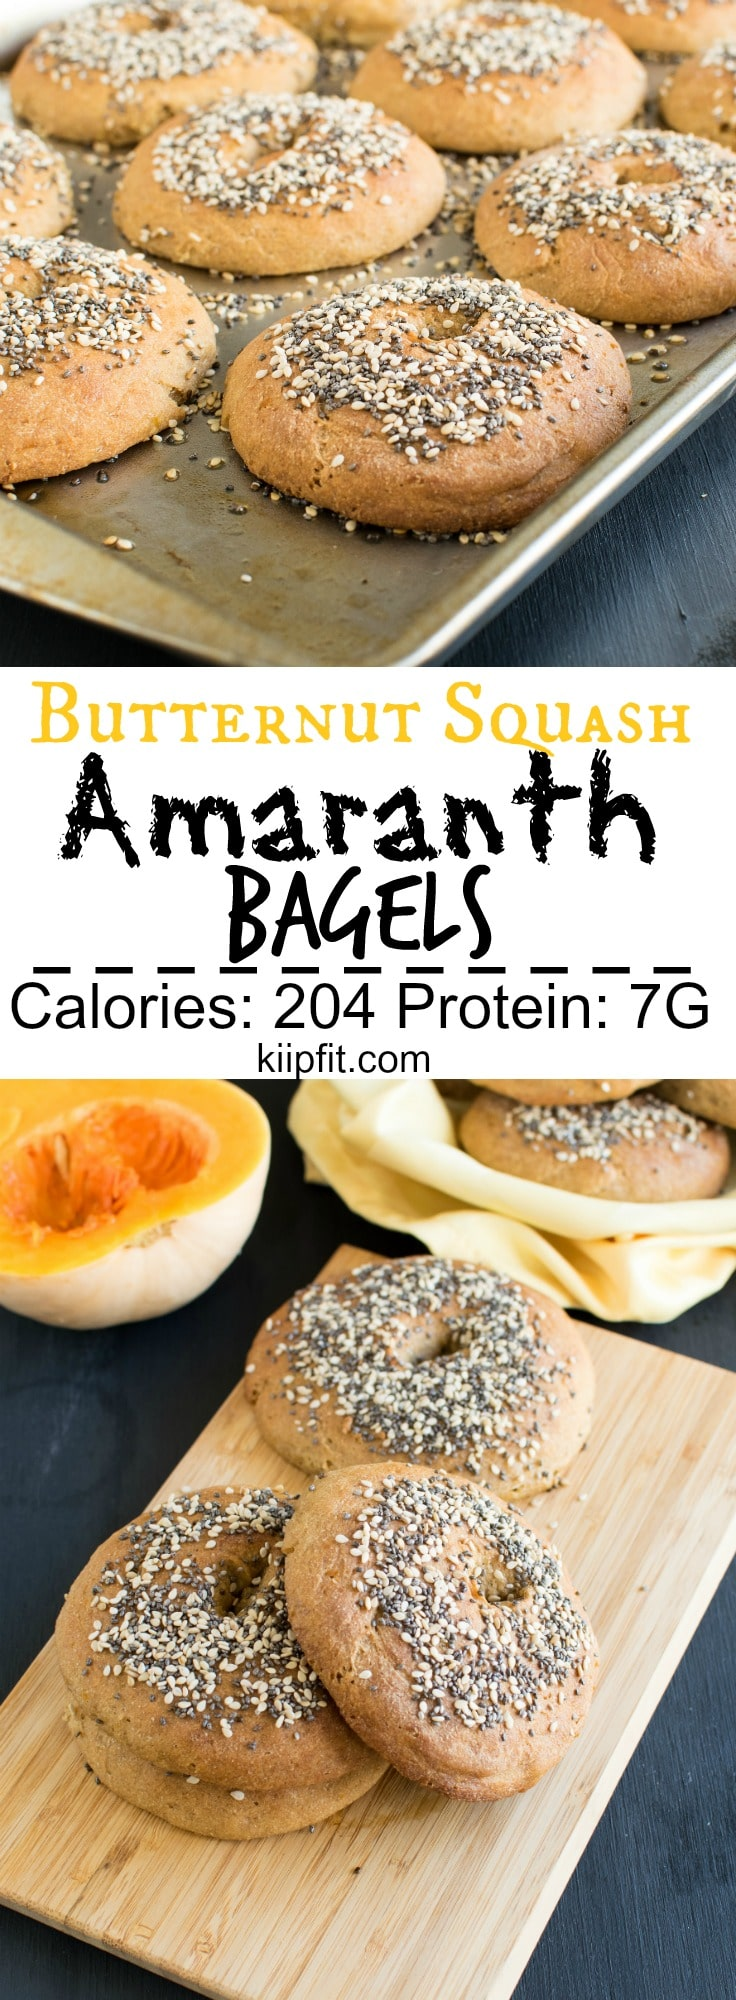 Butternut Squash Amaranth Bagels | fresh squash puree combined with protein rich amaranth flour and soften the texture with yeast these vegan bagels are perfect for weekend mornings when fresh out of oven | kiipfit.com